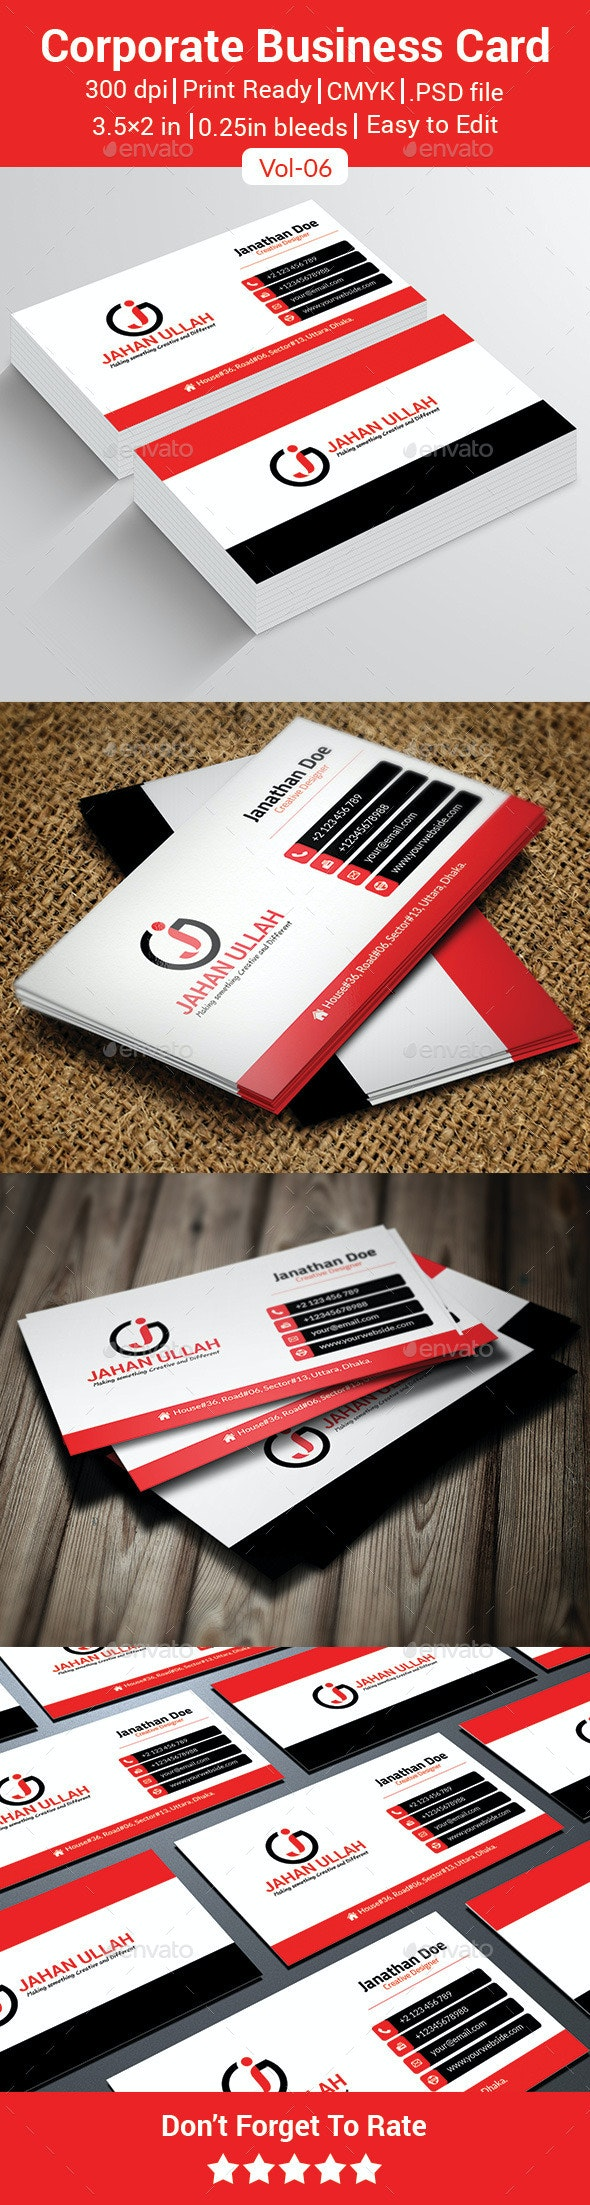 Corporate Business Card V-06 - Business Cards Print Templates